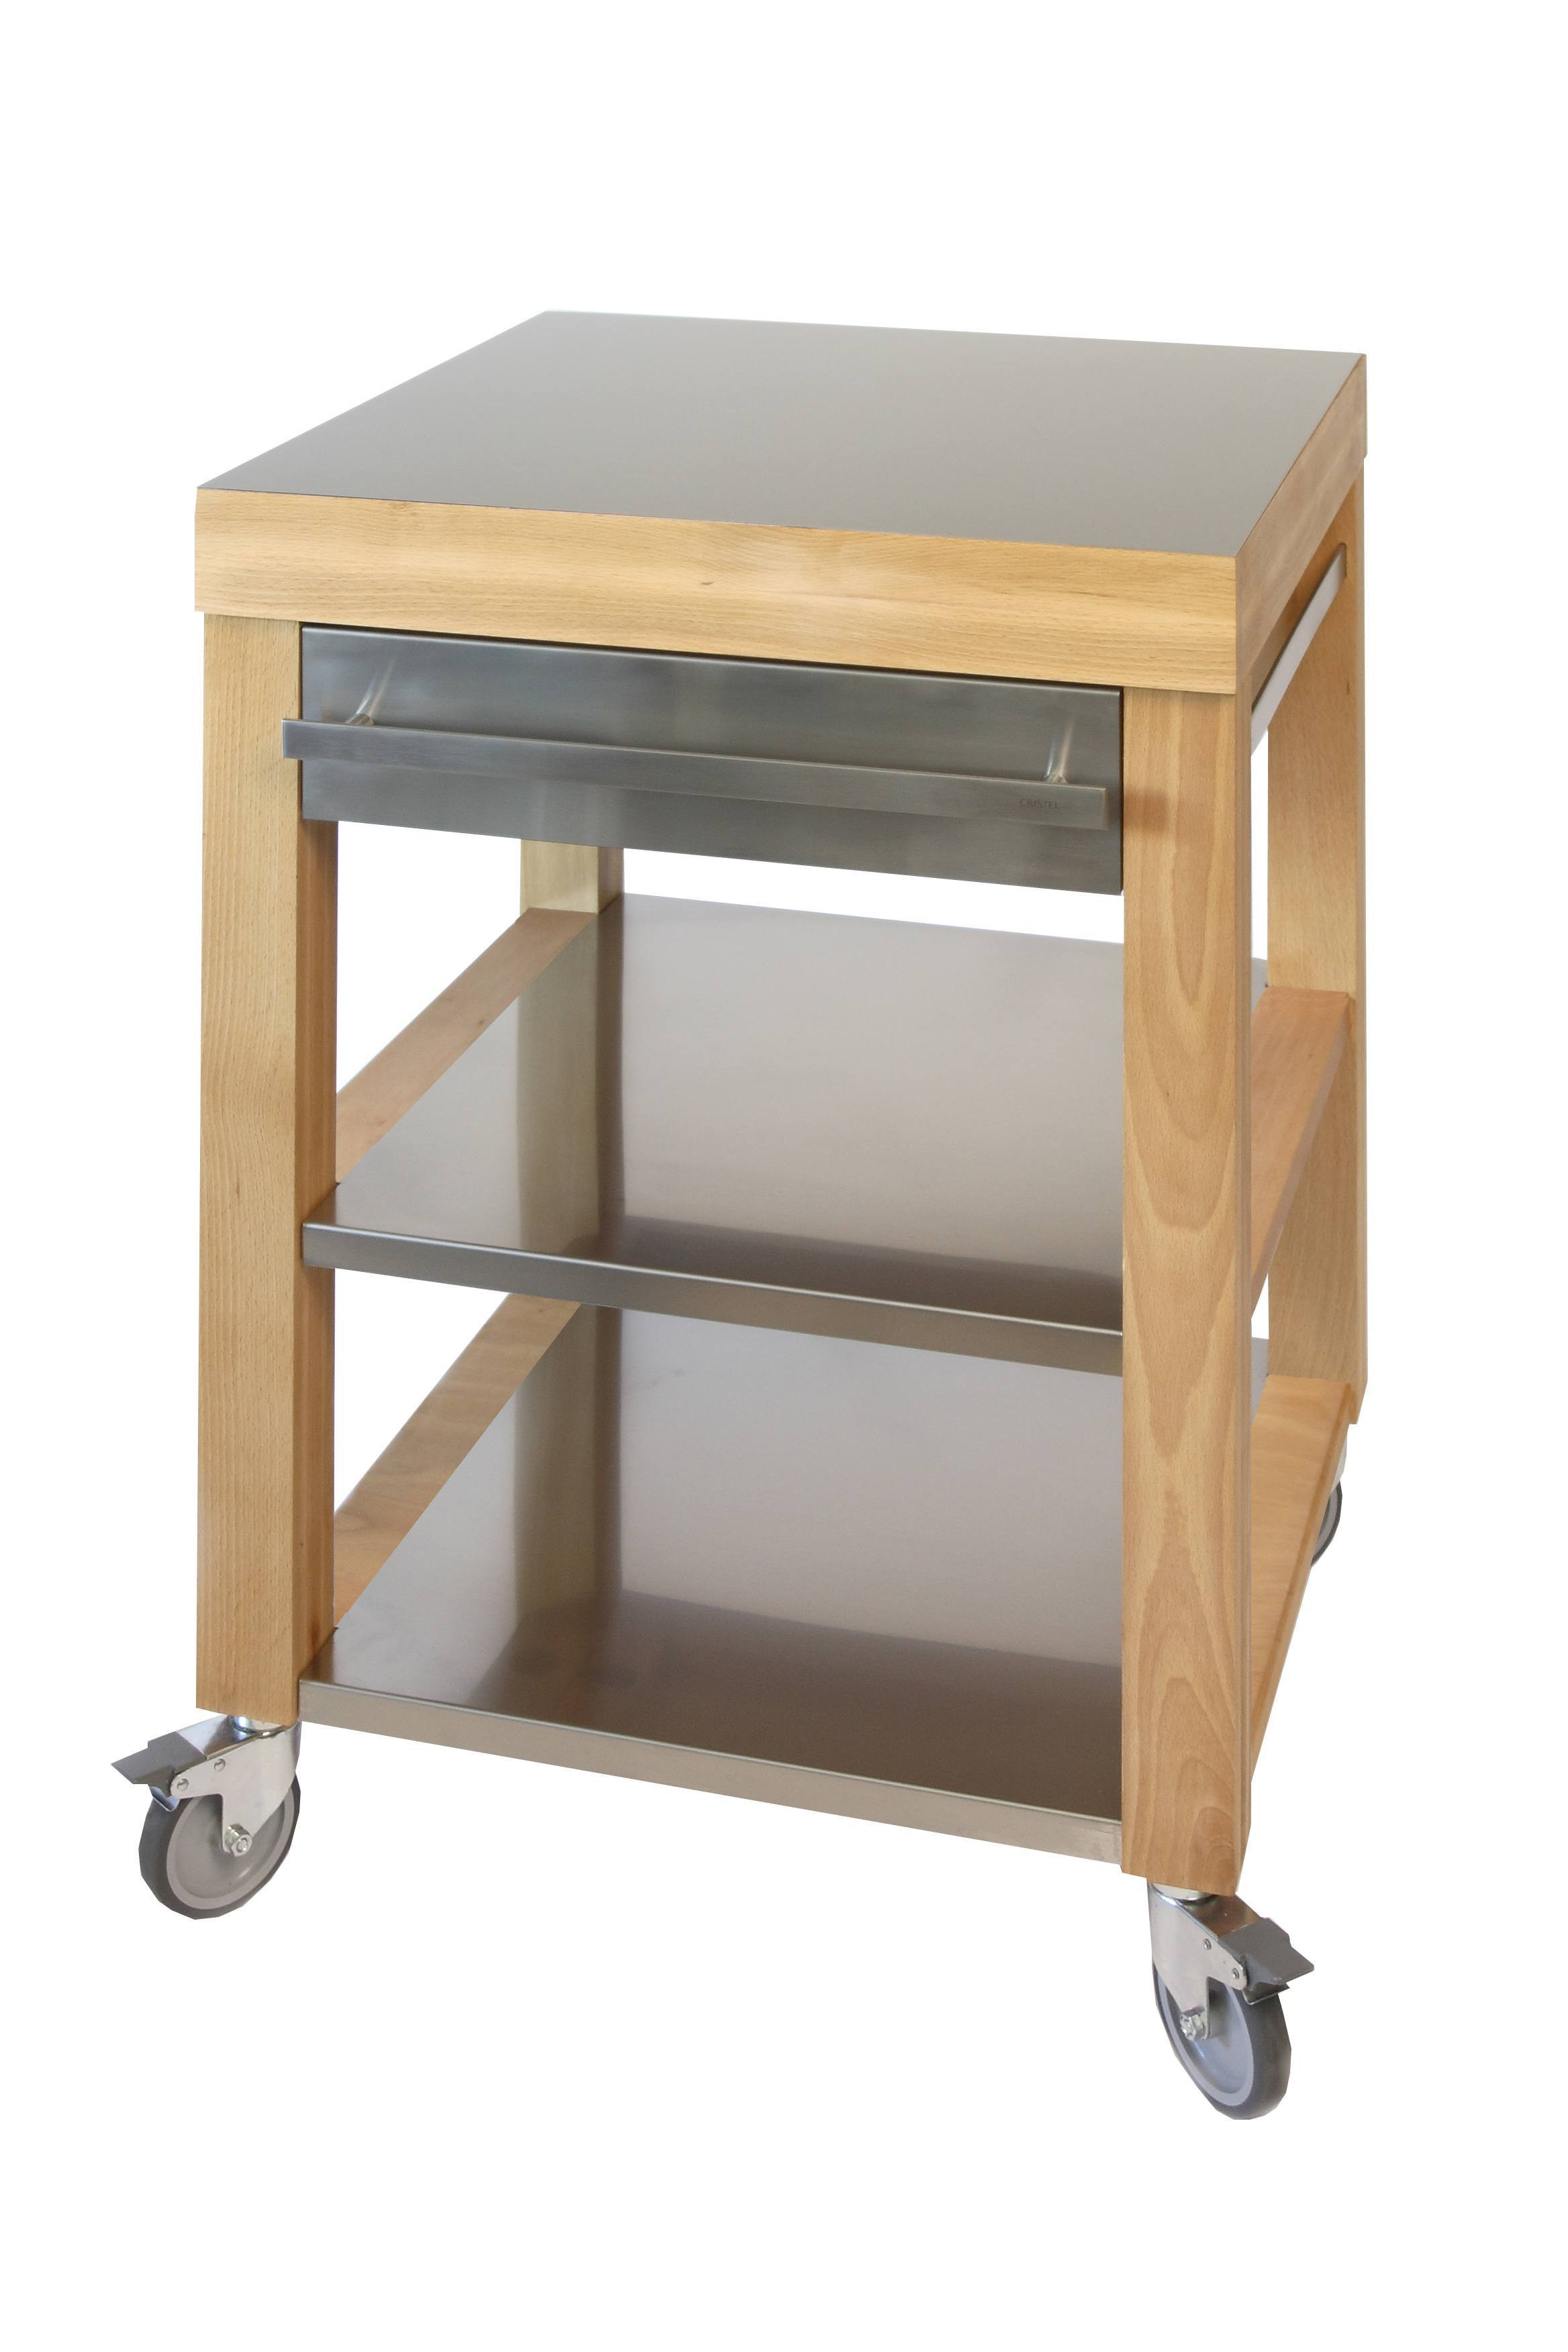 Cristel COOKMOBIL Cm Stainless Steel Top Shelves And Drawer - Stainless steel table top shelves